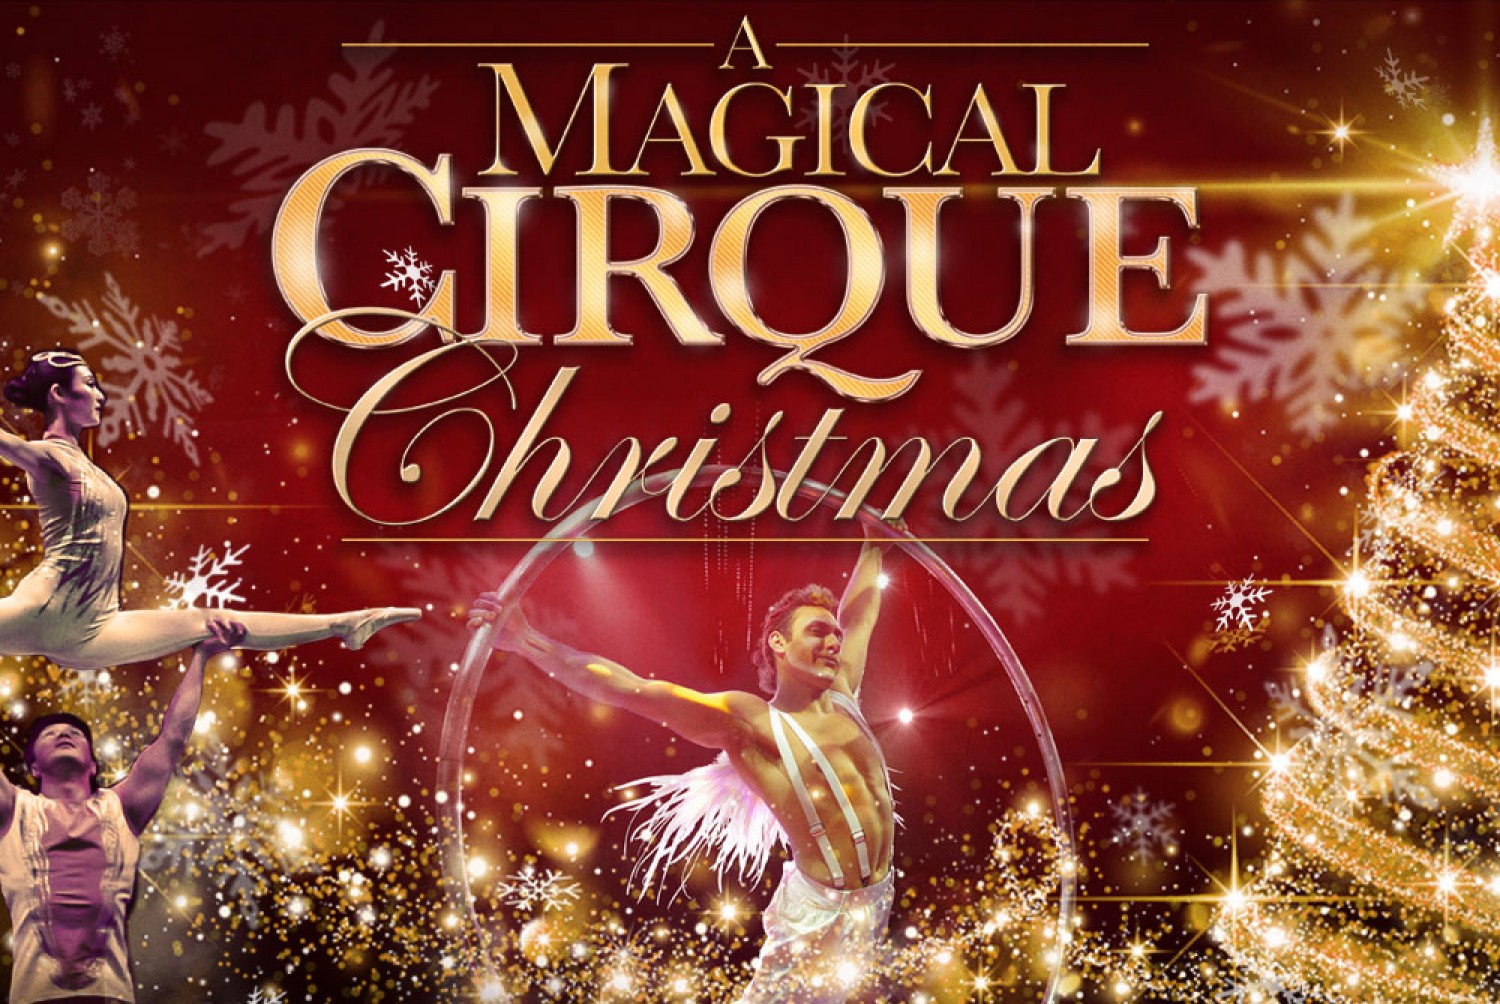 Cirque Christmas.A Magical Cirque Christmas December 8 Ekucenter Com